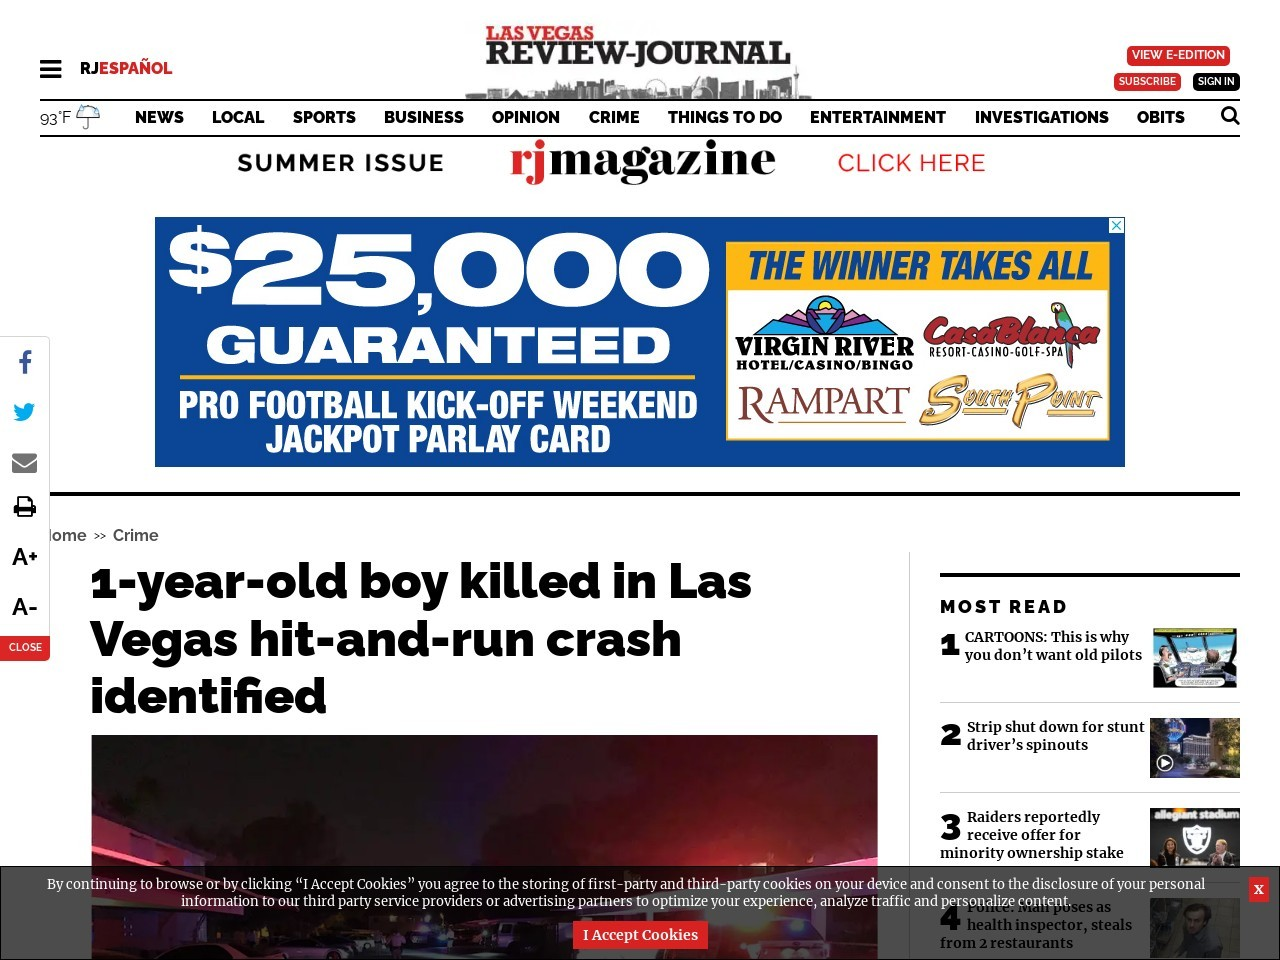 1-year-old boy killed in Las Vegas hit-and-run crash identified